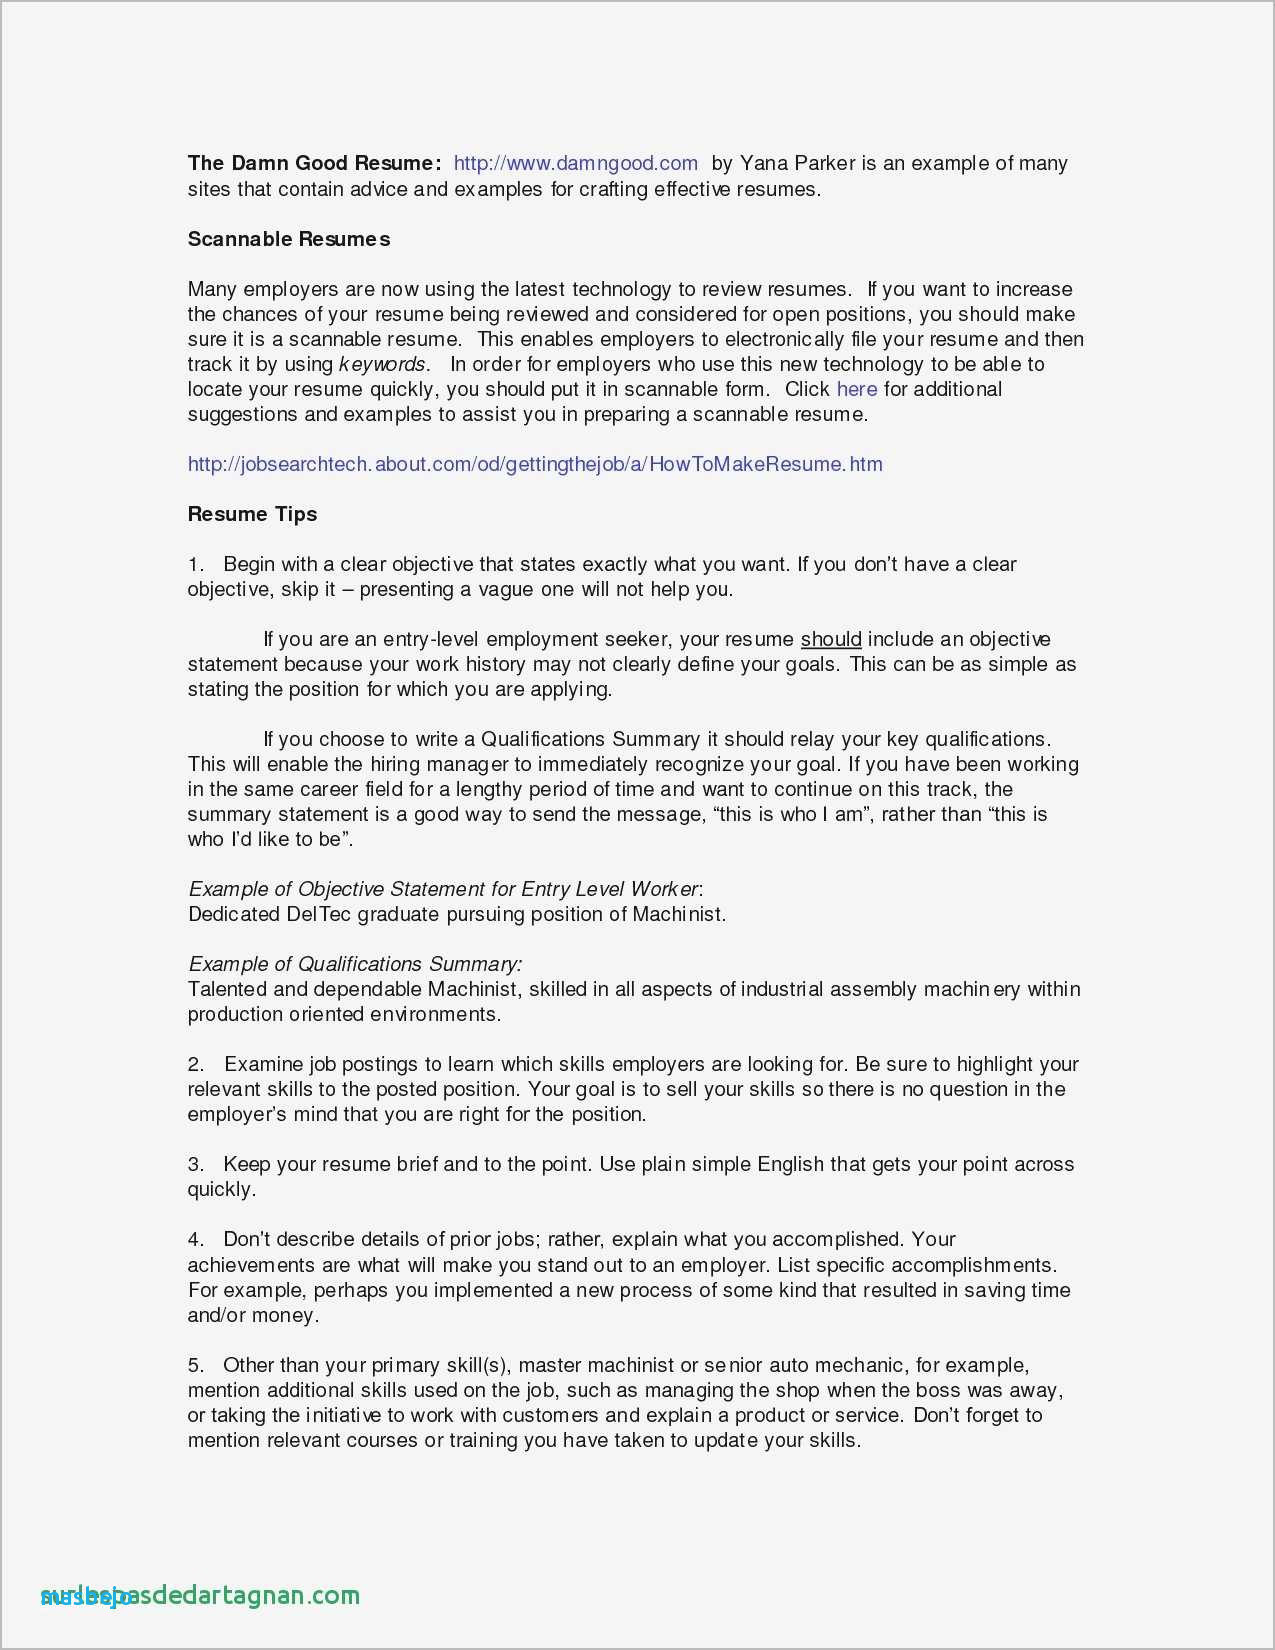 Dishwasher Description for Resume - Skills and Ac Plishments Resume Examples Awesome Resume Tutor